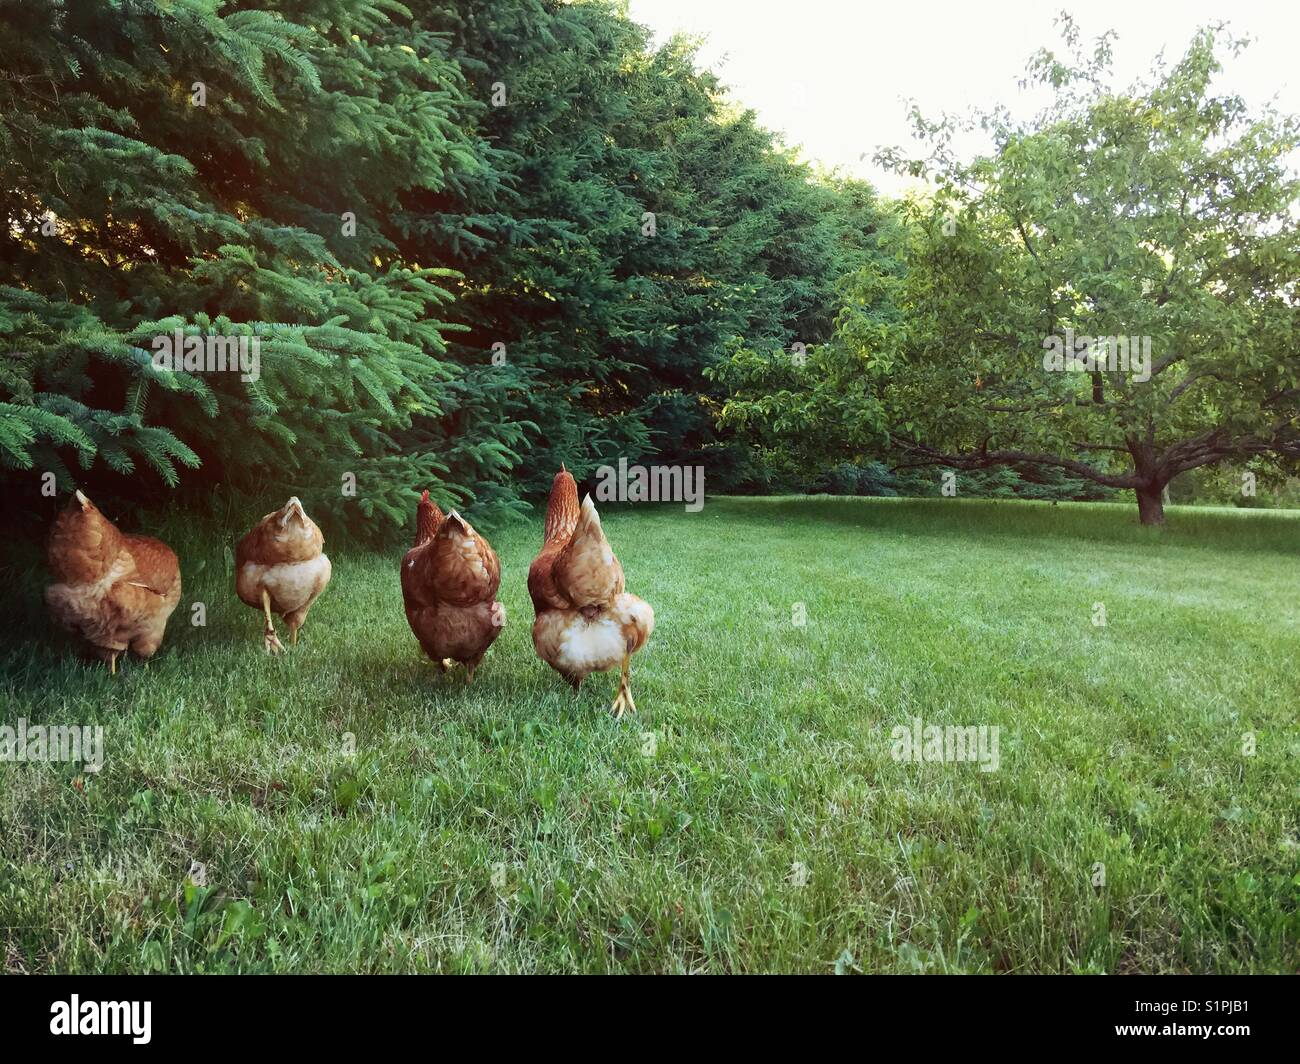 backyard free run chickens going for a walk and foraging in the